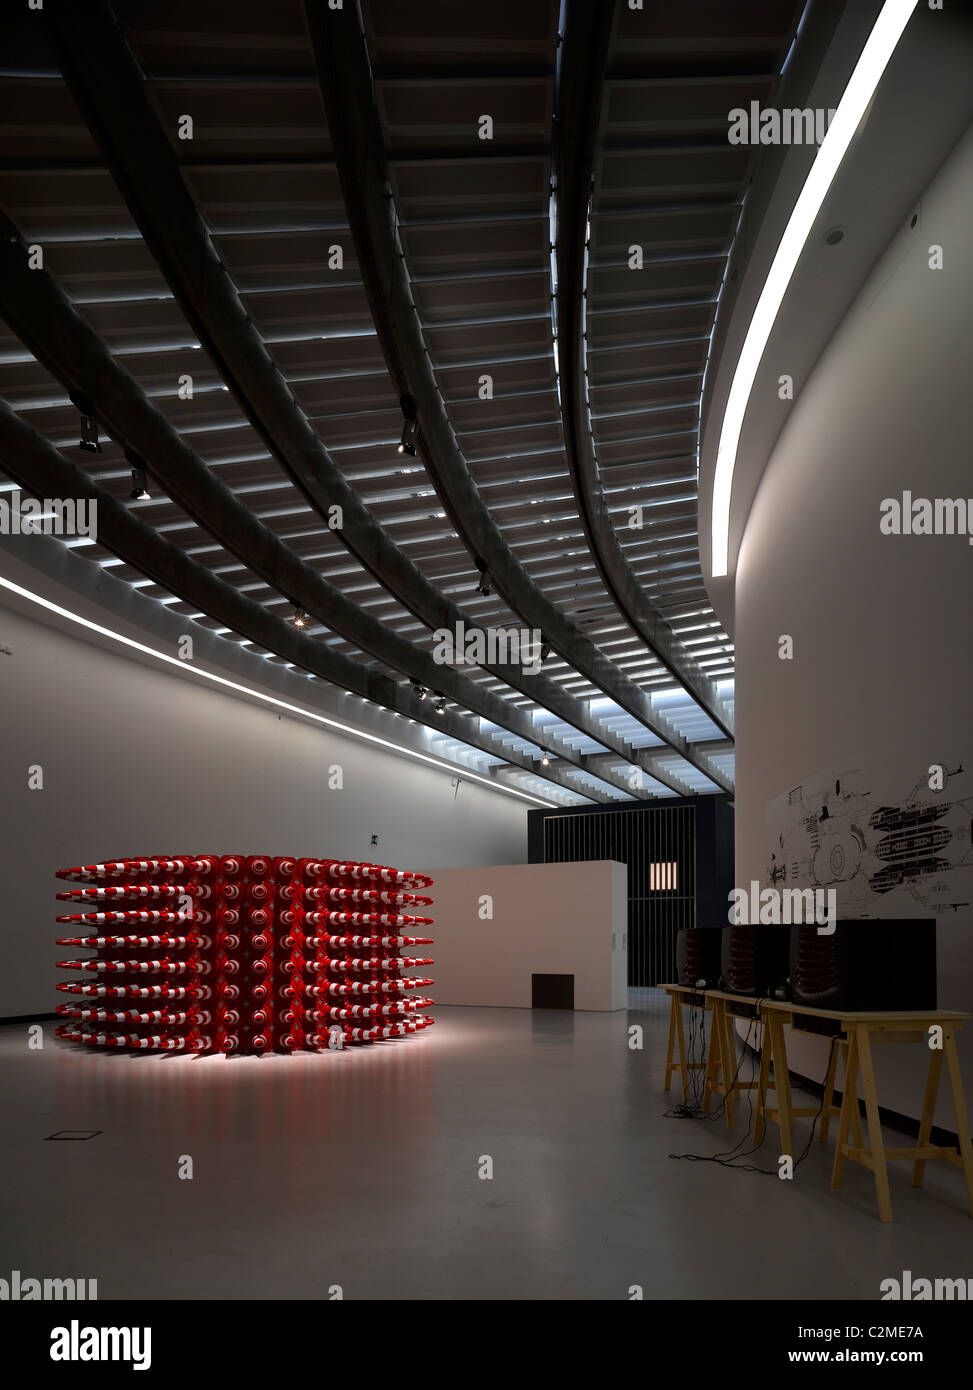 Exhibits at the MAXXI, National Museum of 21st Century Arts, Rome. - Stock Image